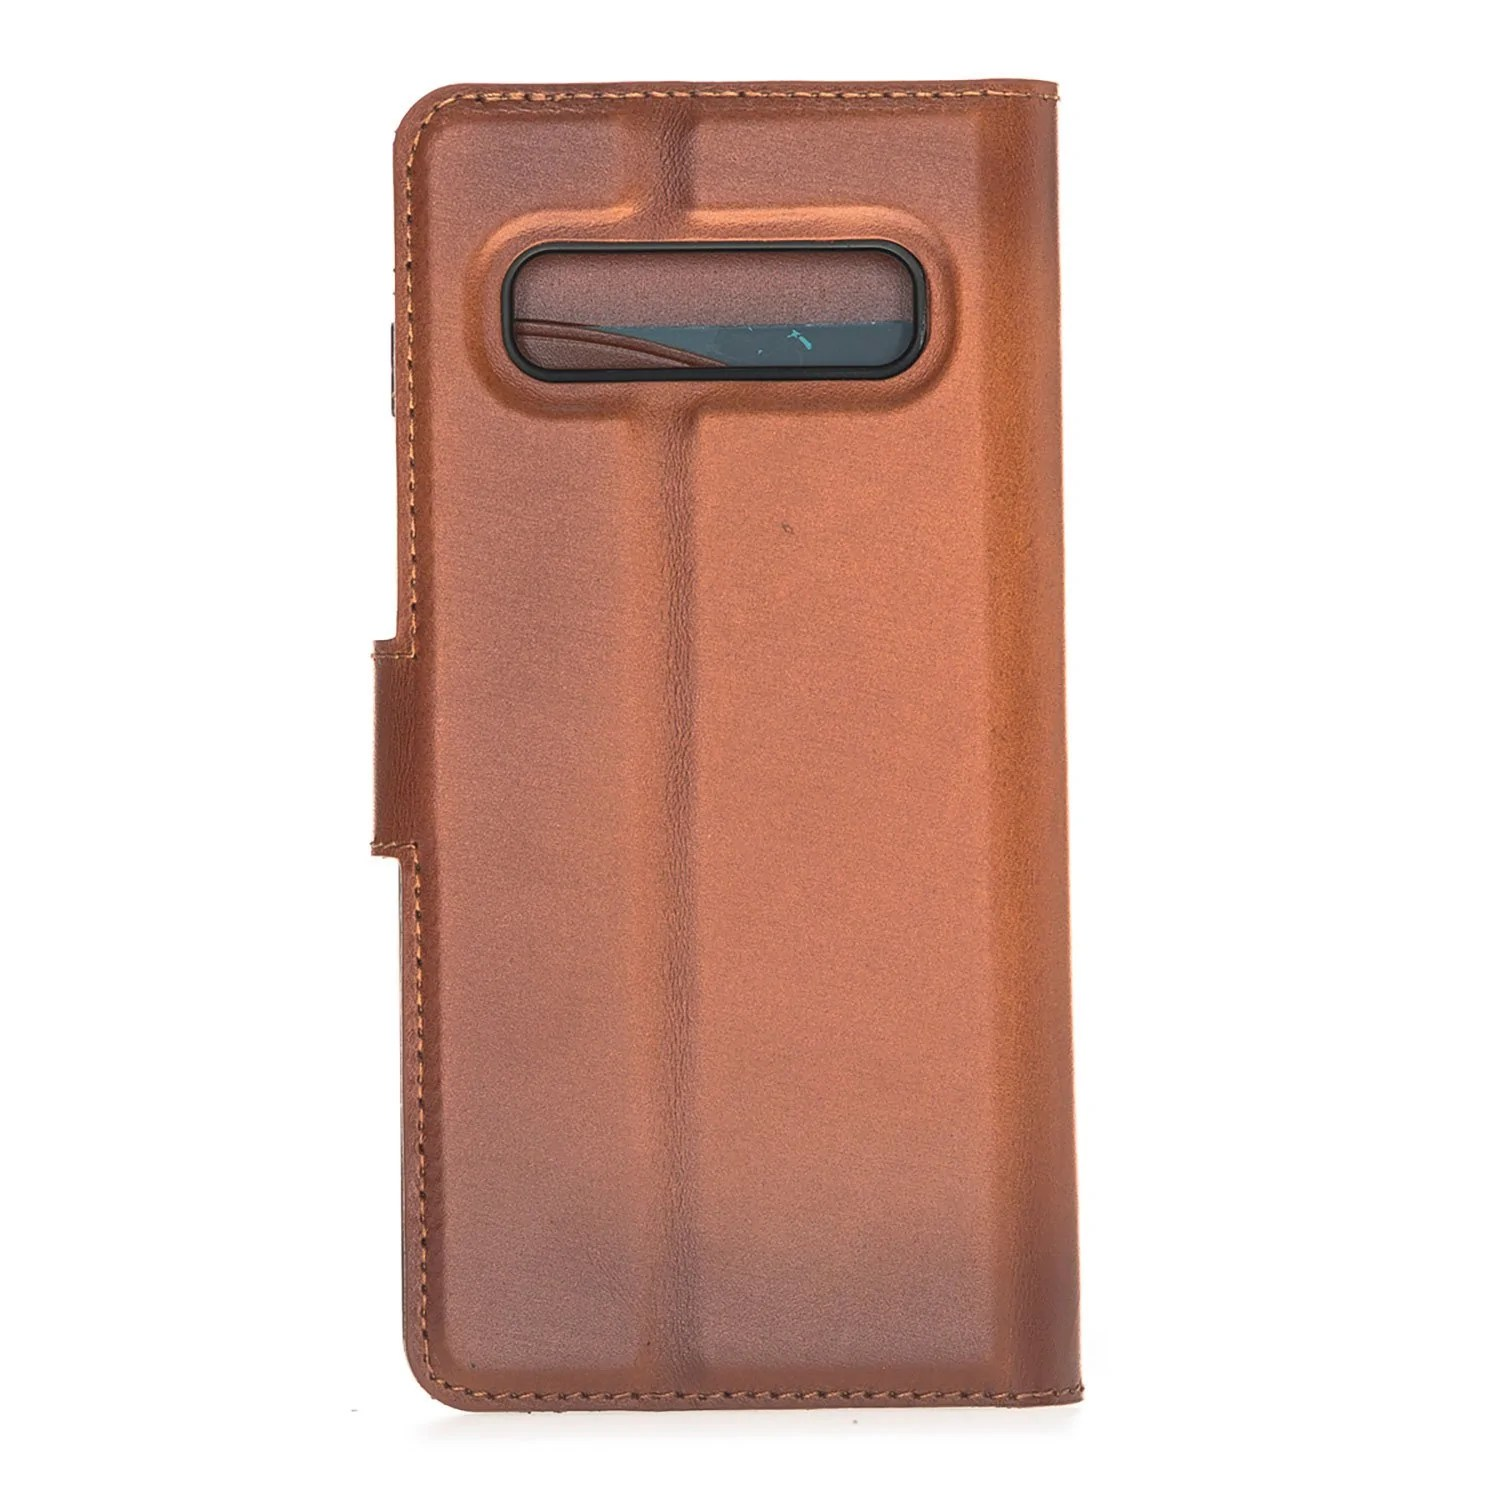 Handyhülle S6 Edge Leder Magnetic Detachable Leather Wallet Case For Samsung Galaxy